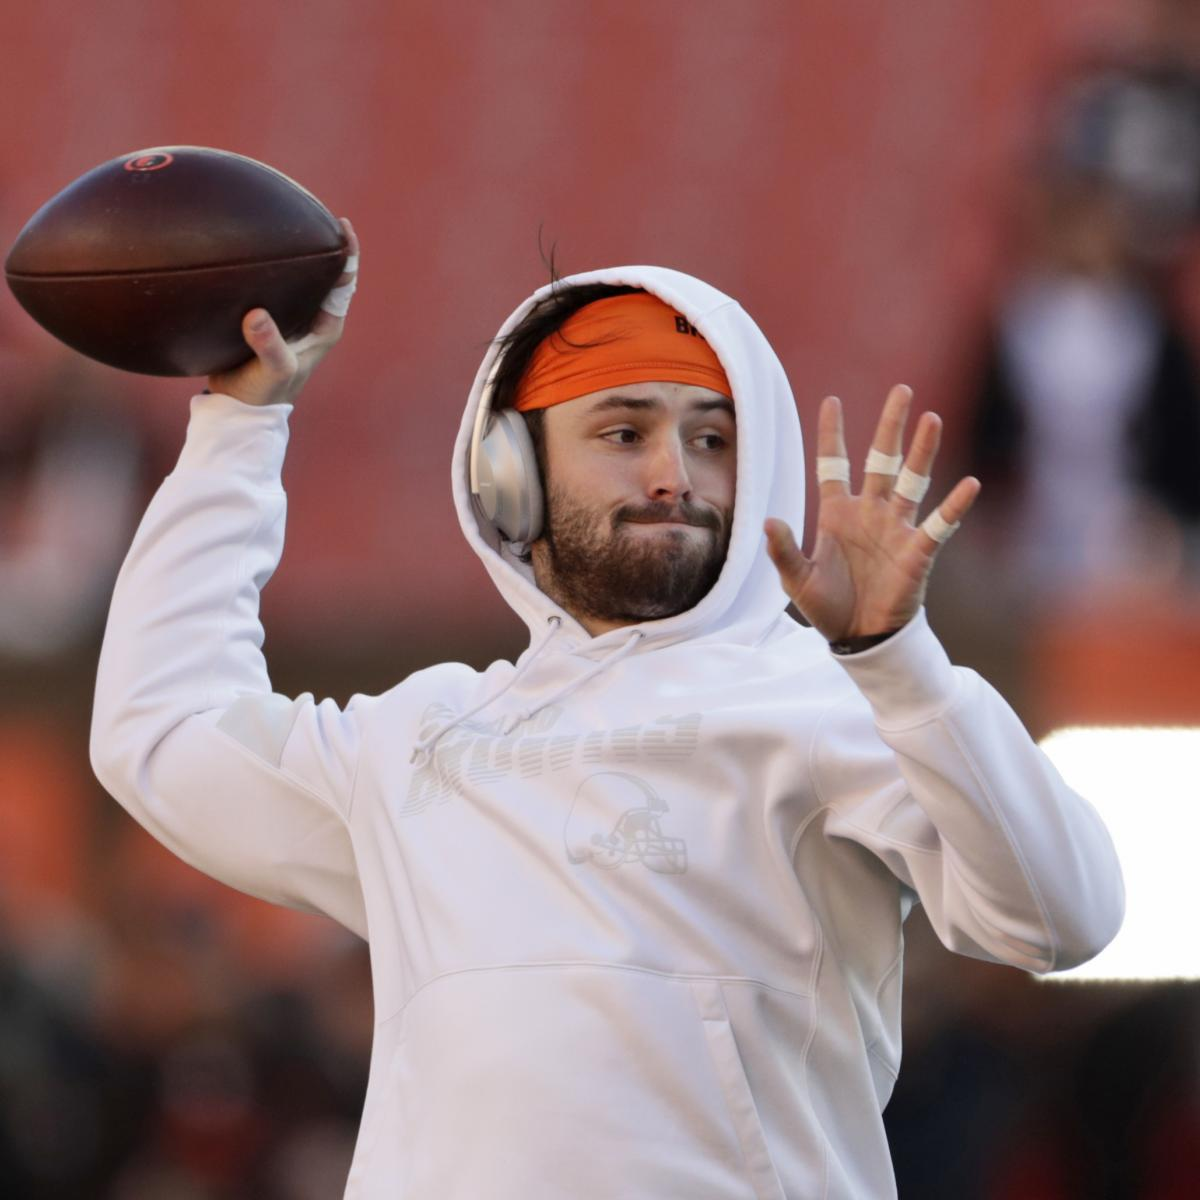 Report: Browns' Baker Mayfield Aims to Be Slimmer, Faster After 2019 Struggles